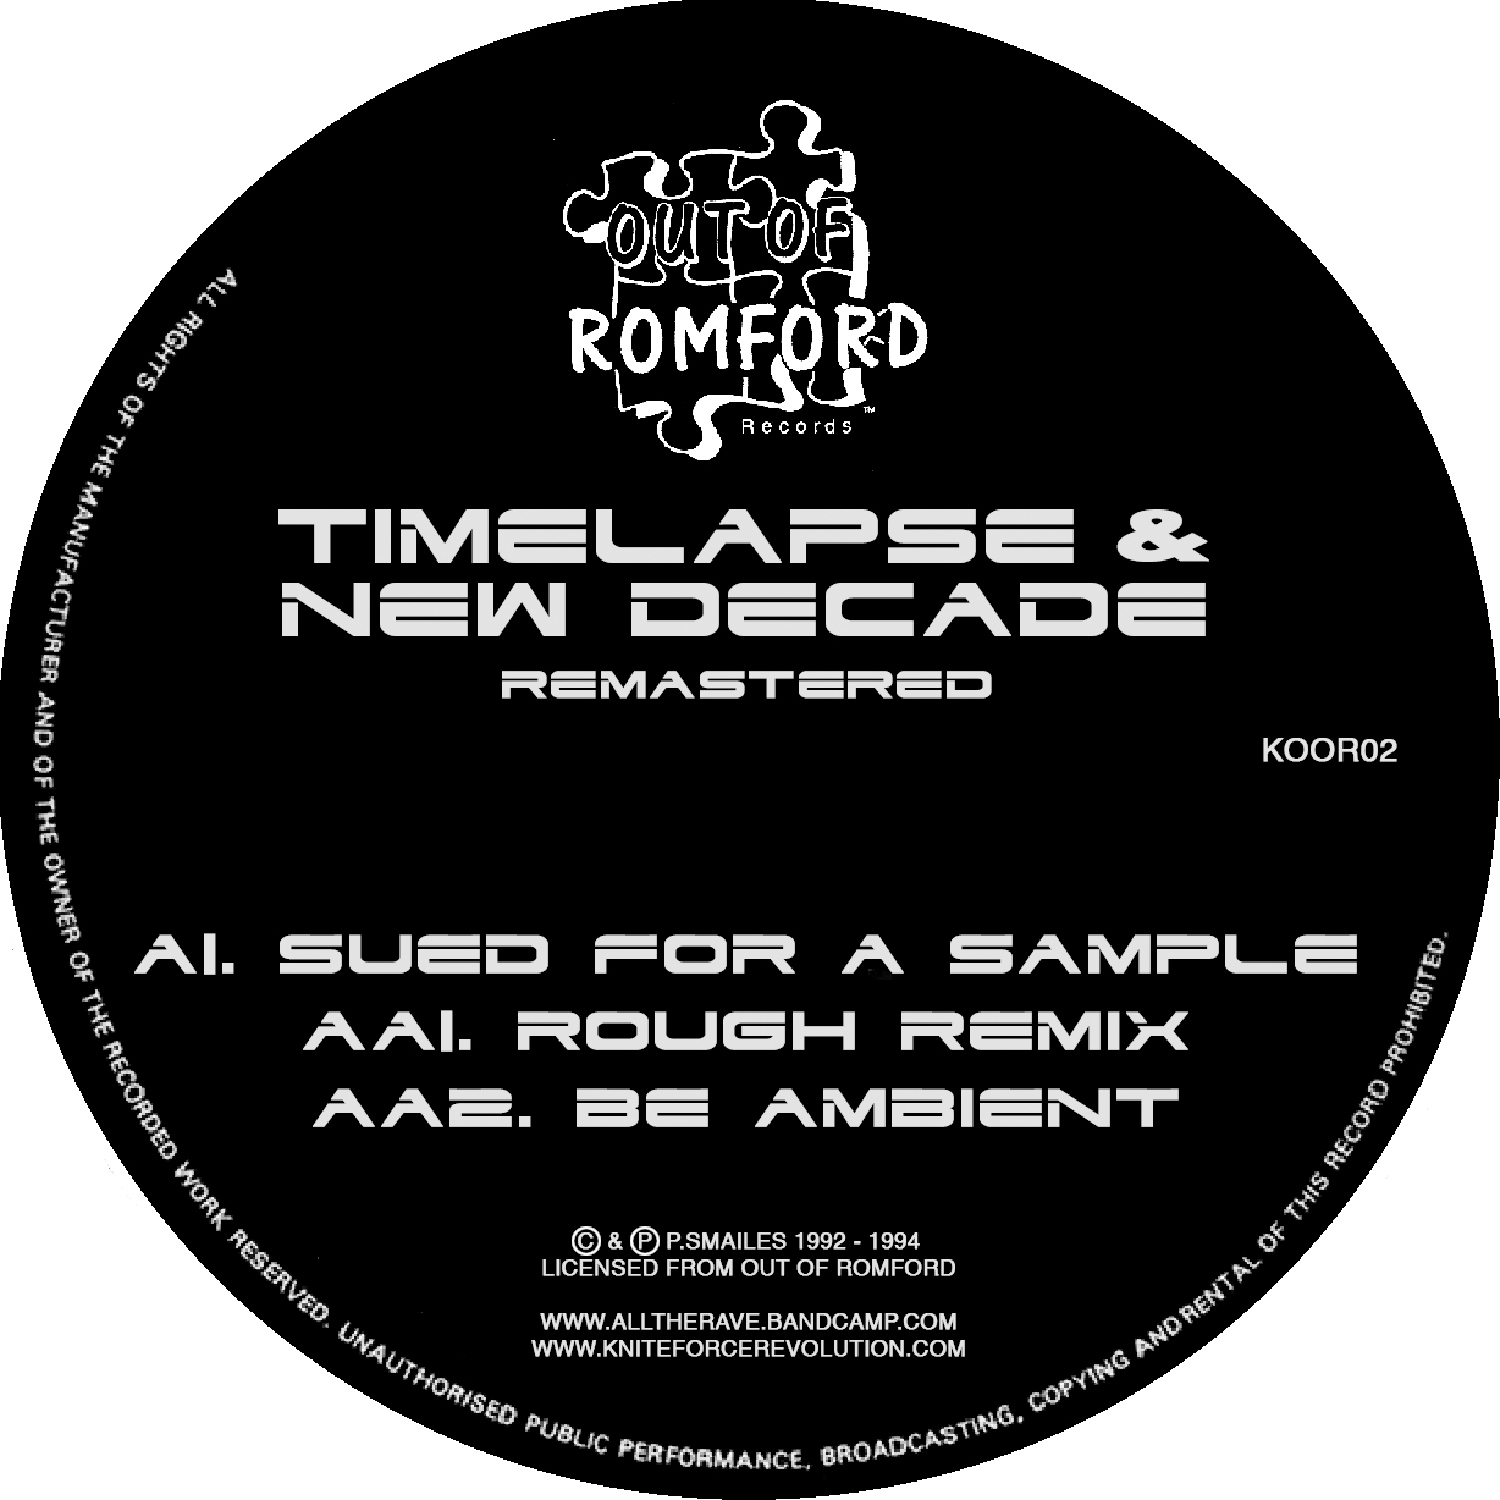 "[KOOR02] Timelapse & New Decade - Sued For A Sample EP (Remastered) (12"" Vinyl + Digital)"